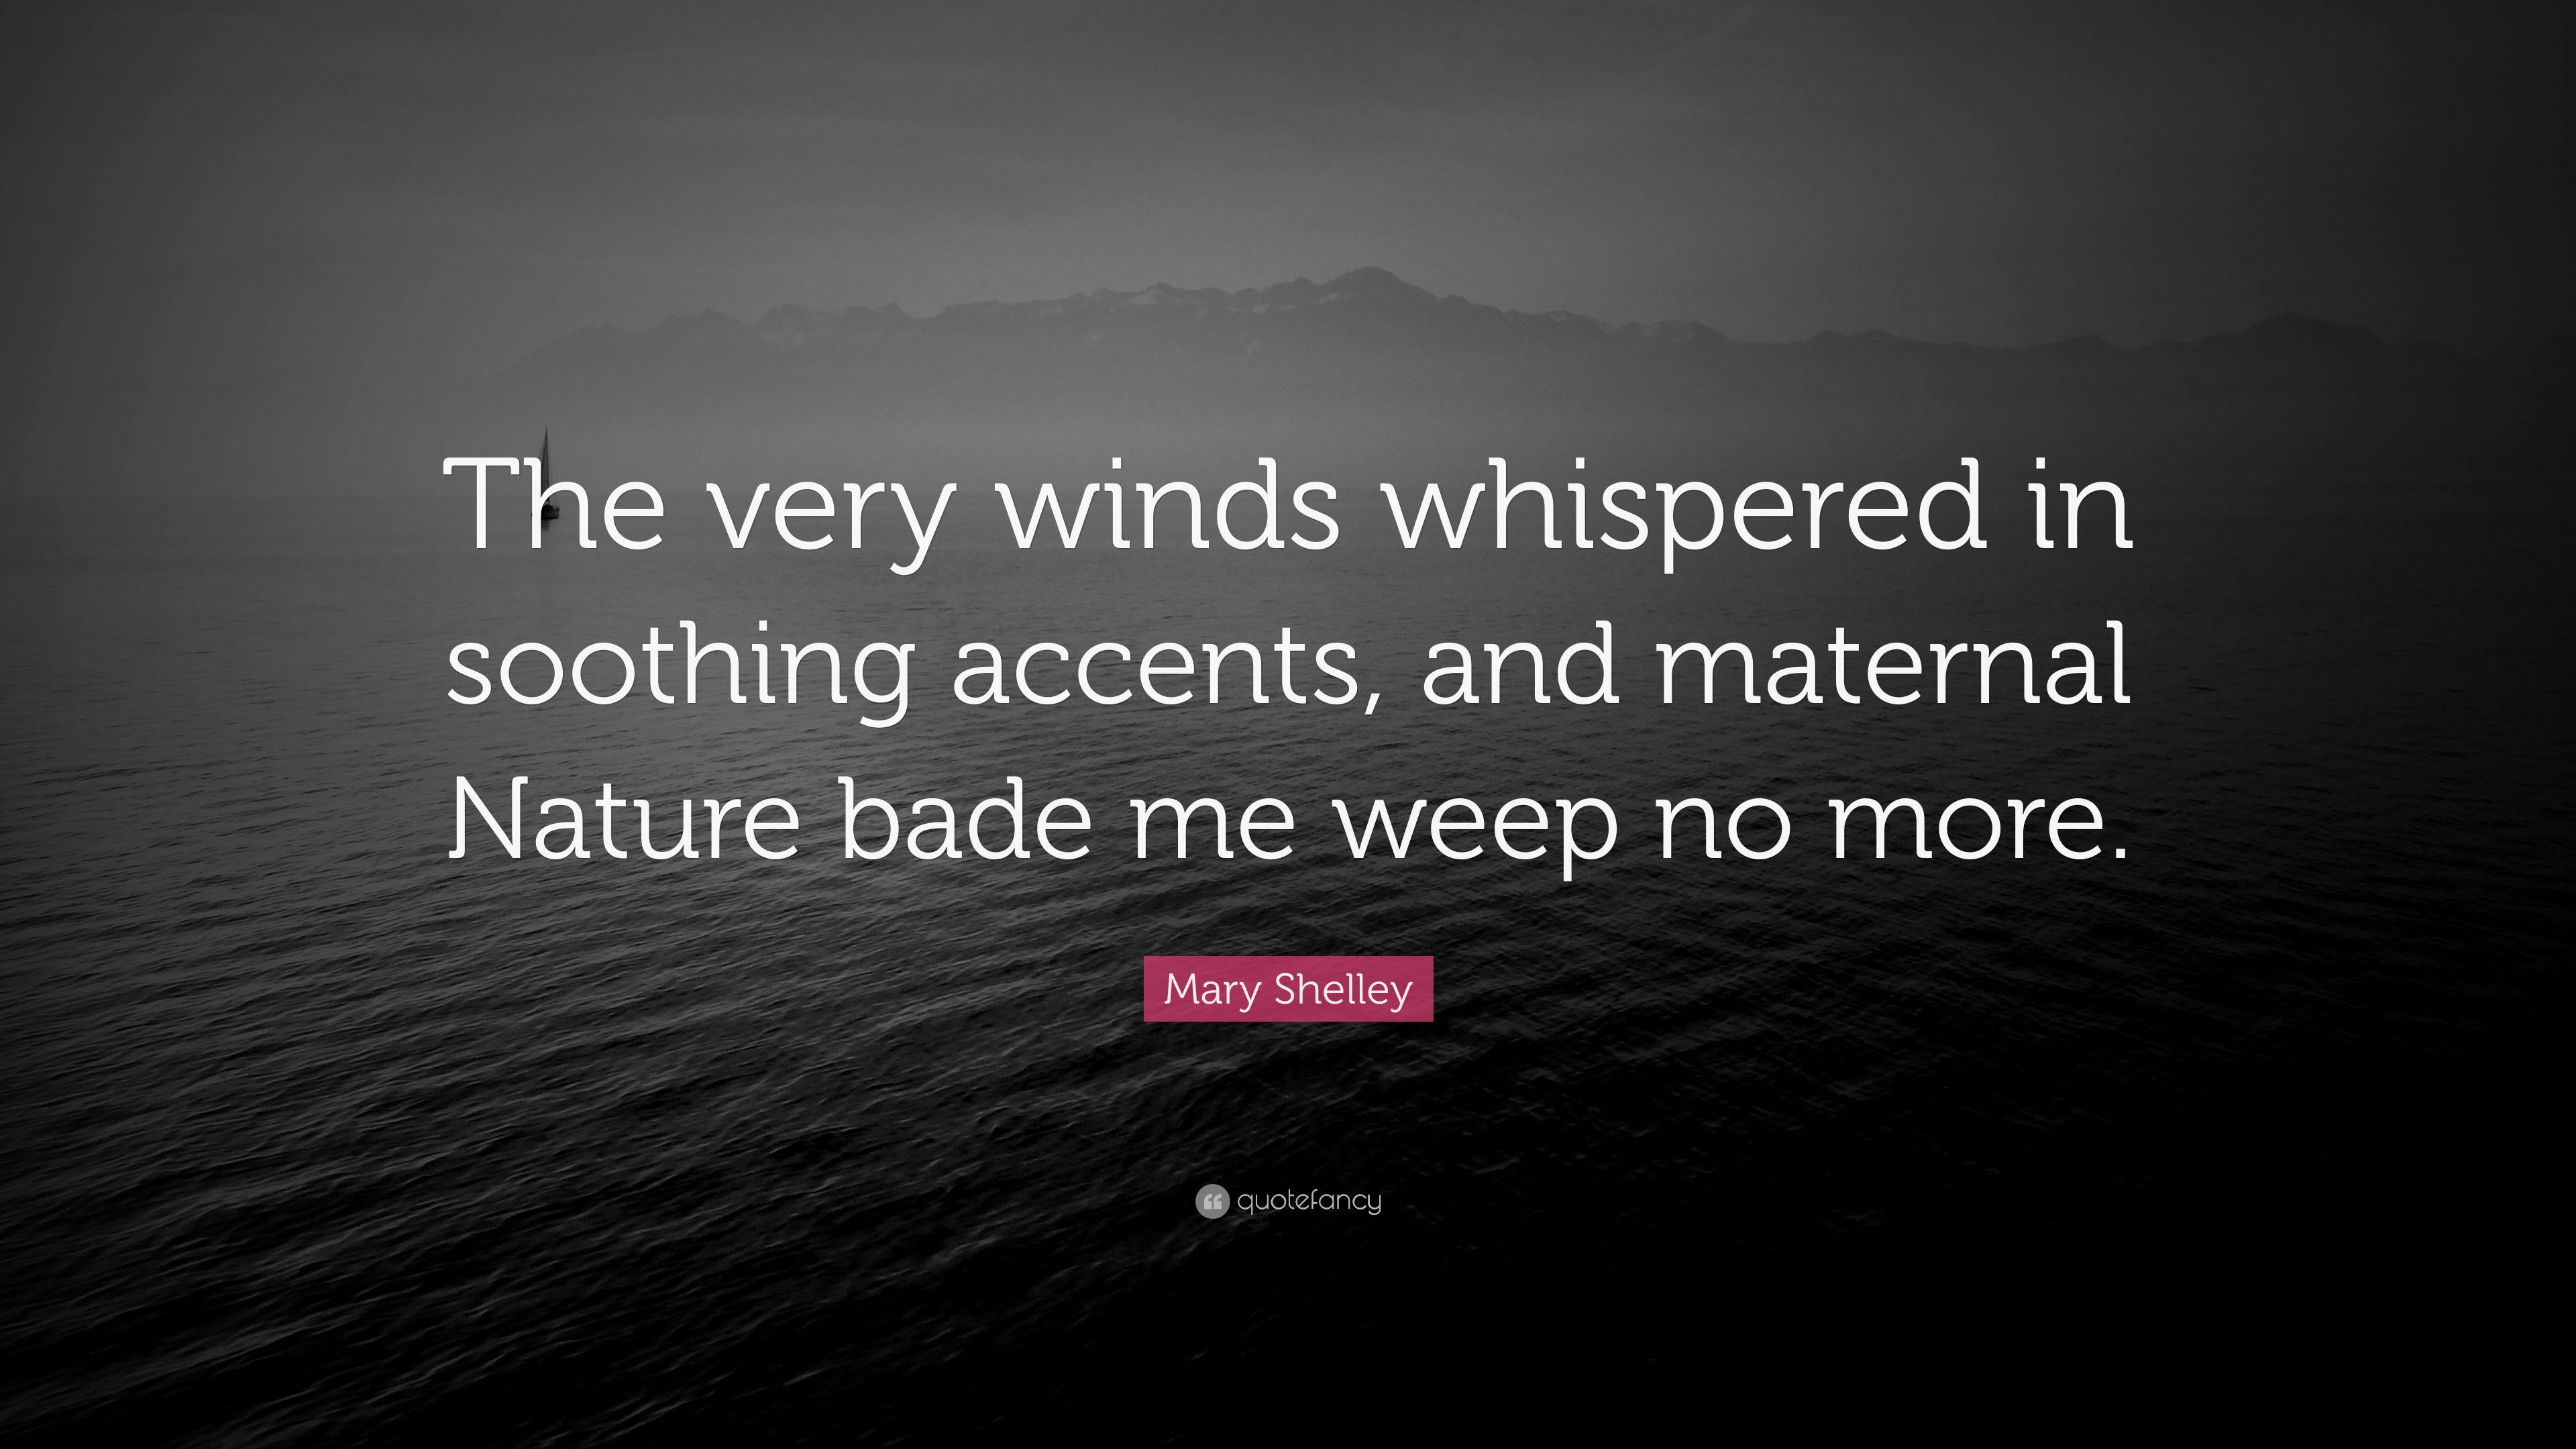 Mary Shelley Quote The Very Winds Whispered In Soothing Accents